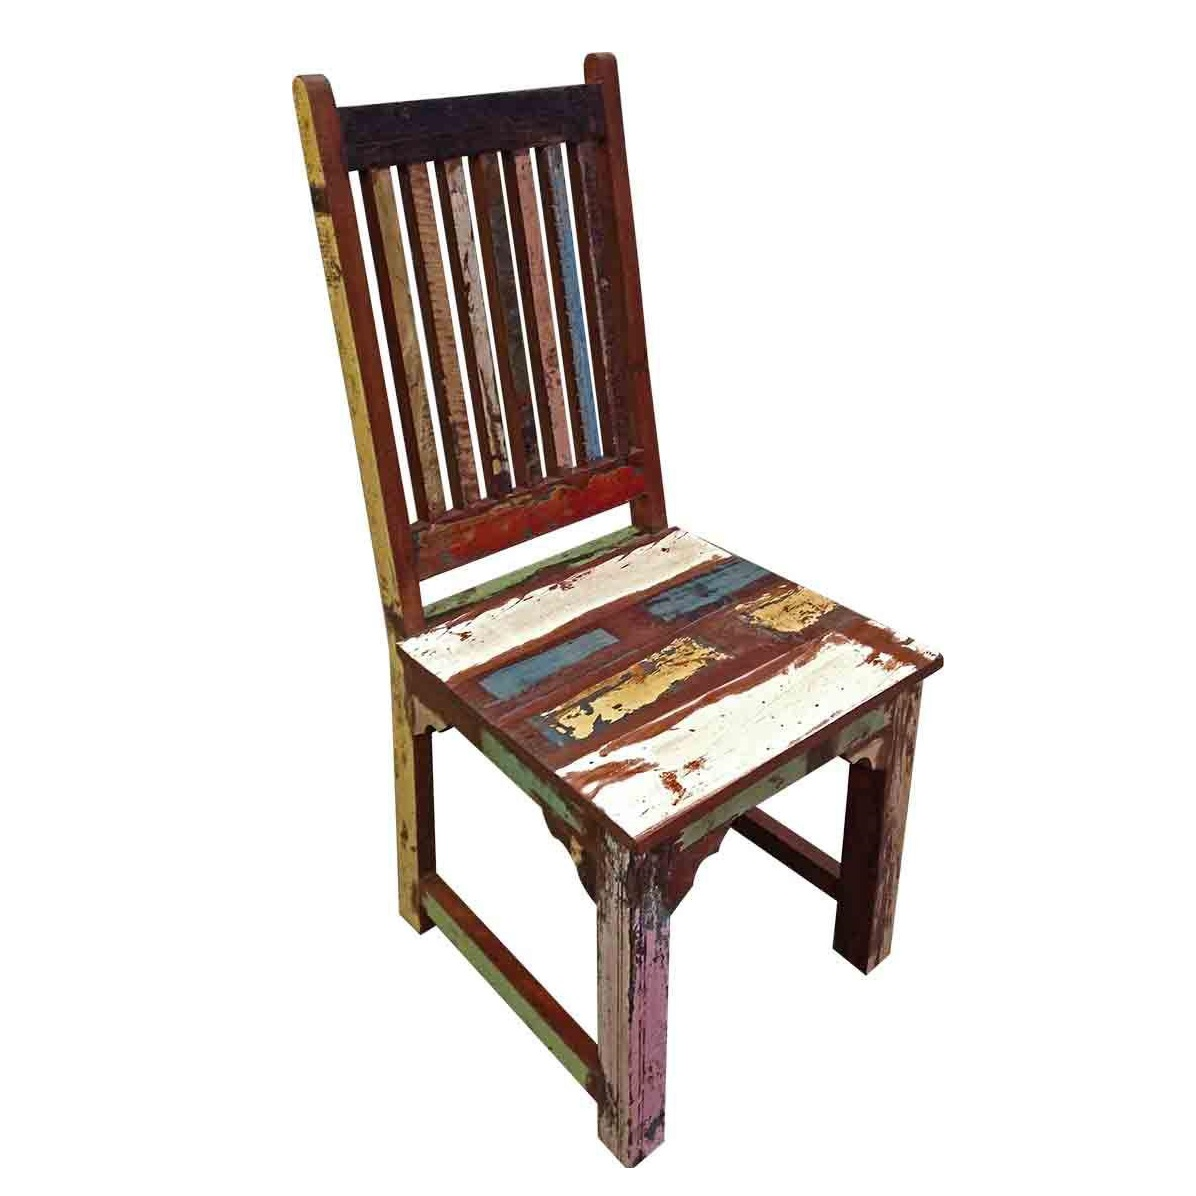 distressed adirondack chairs wooden brix multicolored dining chair malibu mart